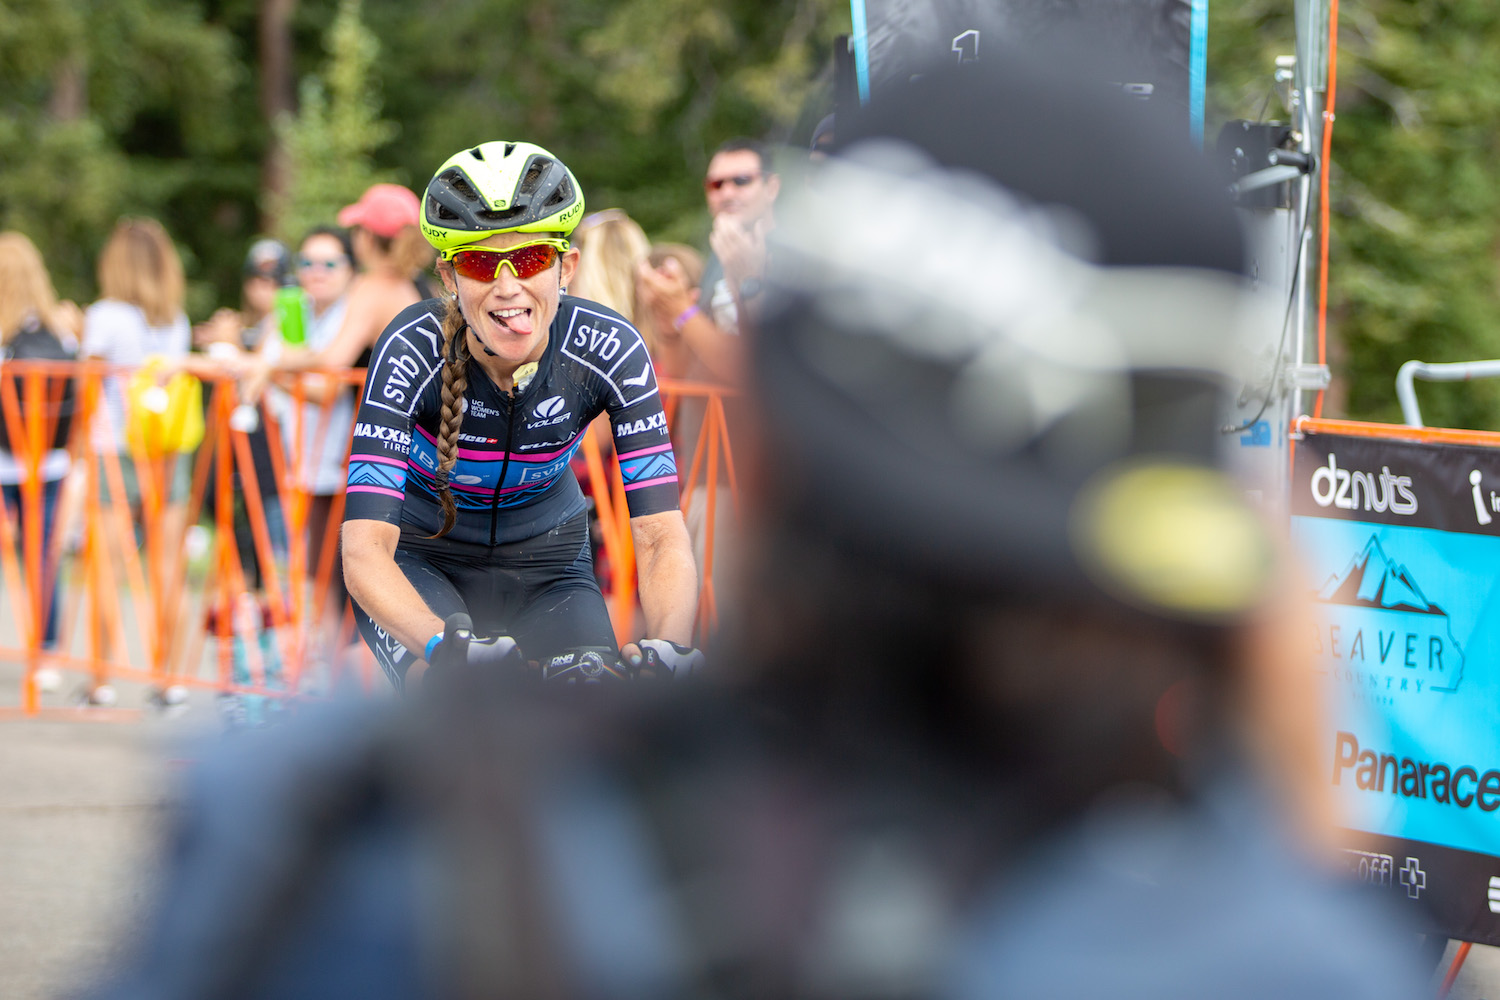 Coming fresh off the  Hunt of the North , Lauren Stephens placed 2nd in the women's race. PC: Angie Harker